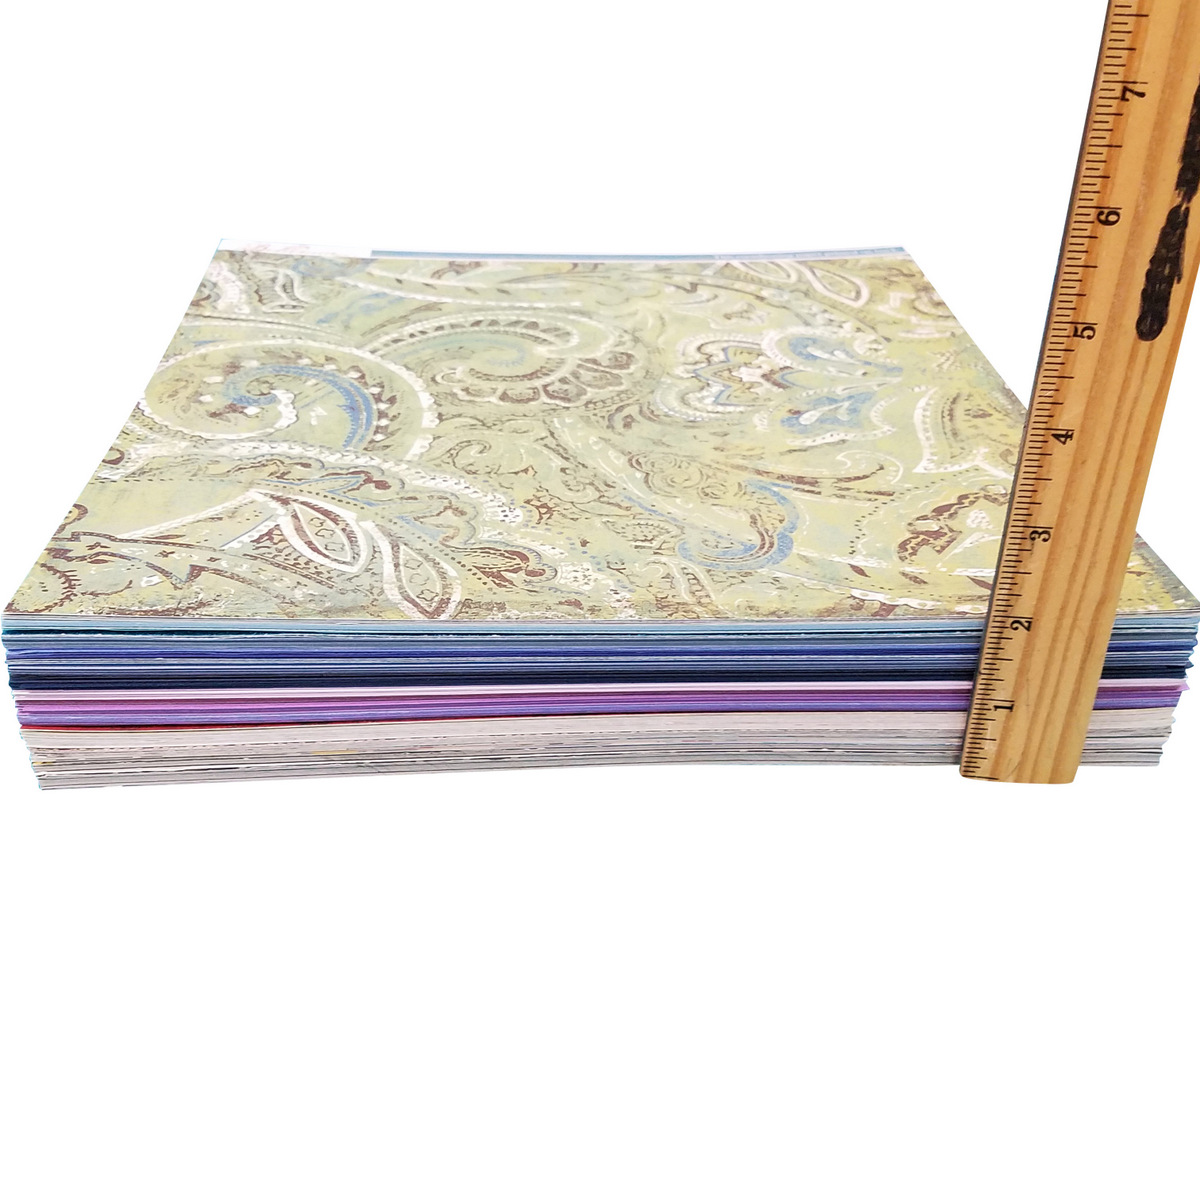 Measure your paper stack, organize paper Totally-Tiffany